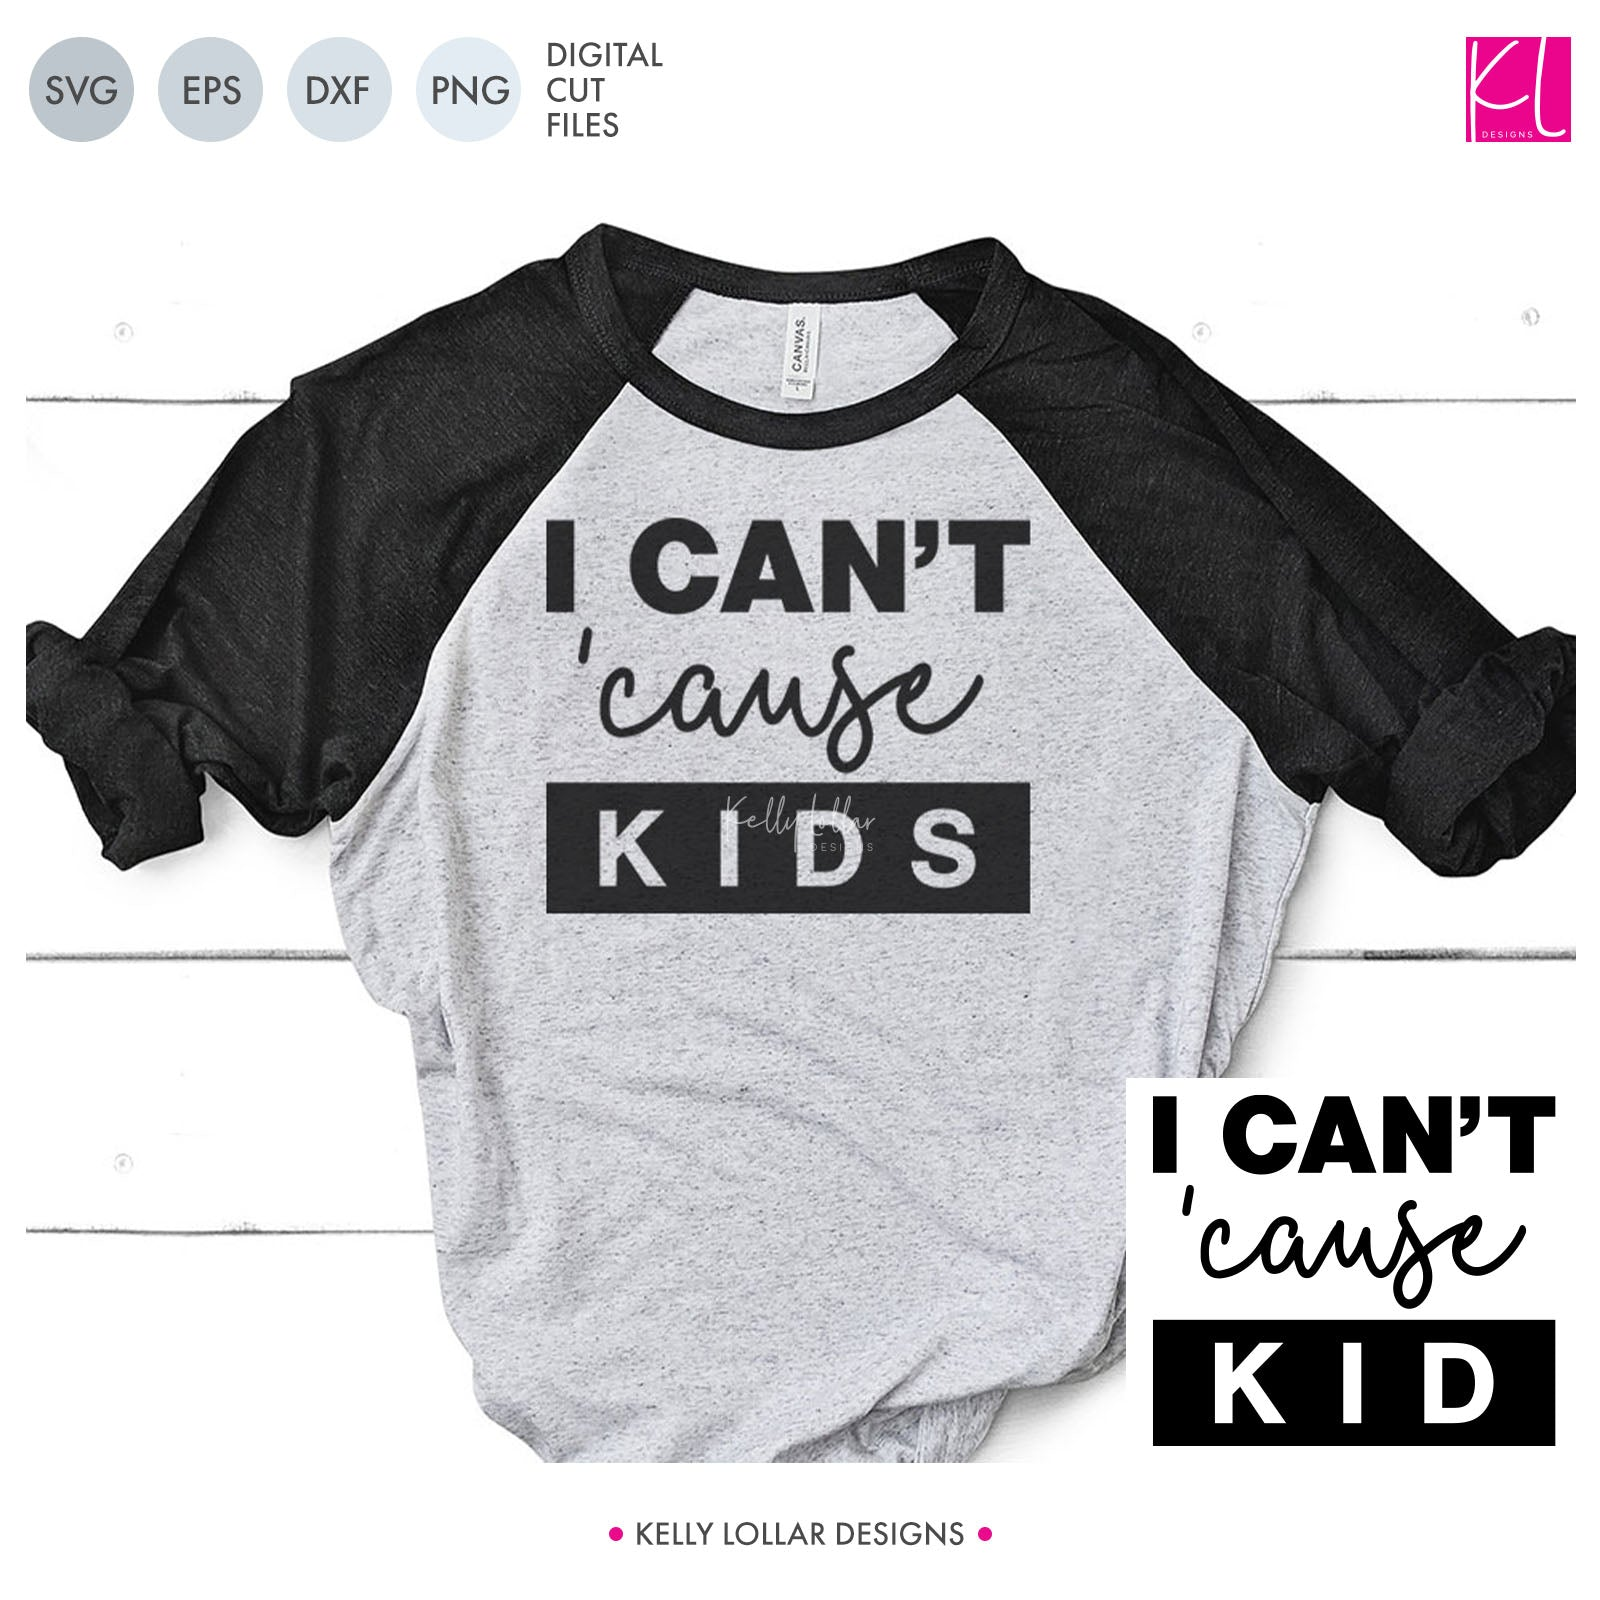 I Can't 'Cause Kids Funny Quote | SVG DXF EPS PNG Cut Files | Free for Commercial Use